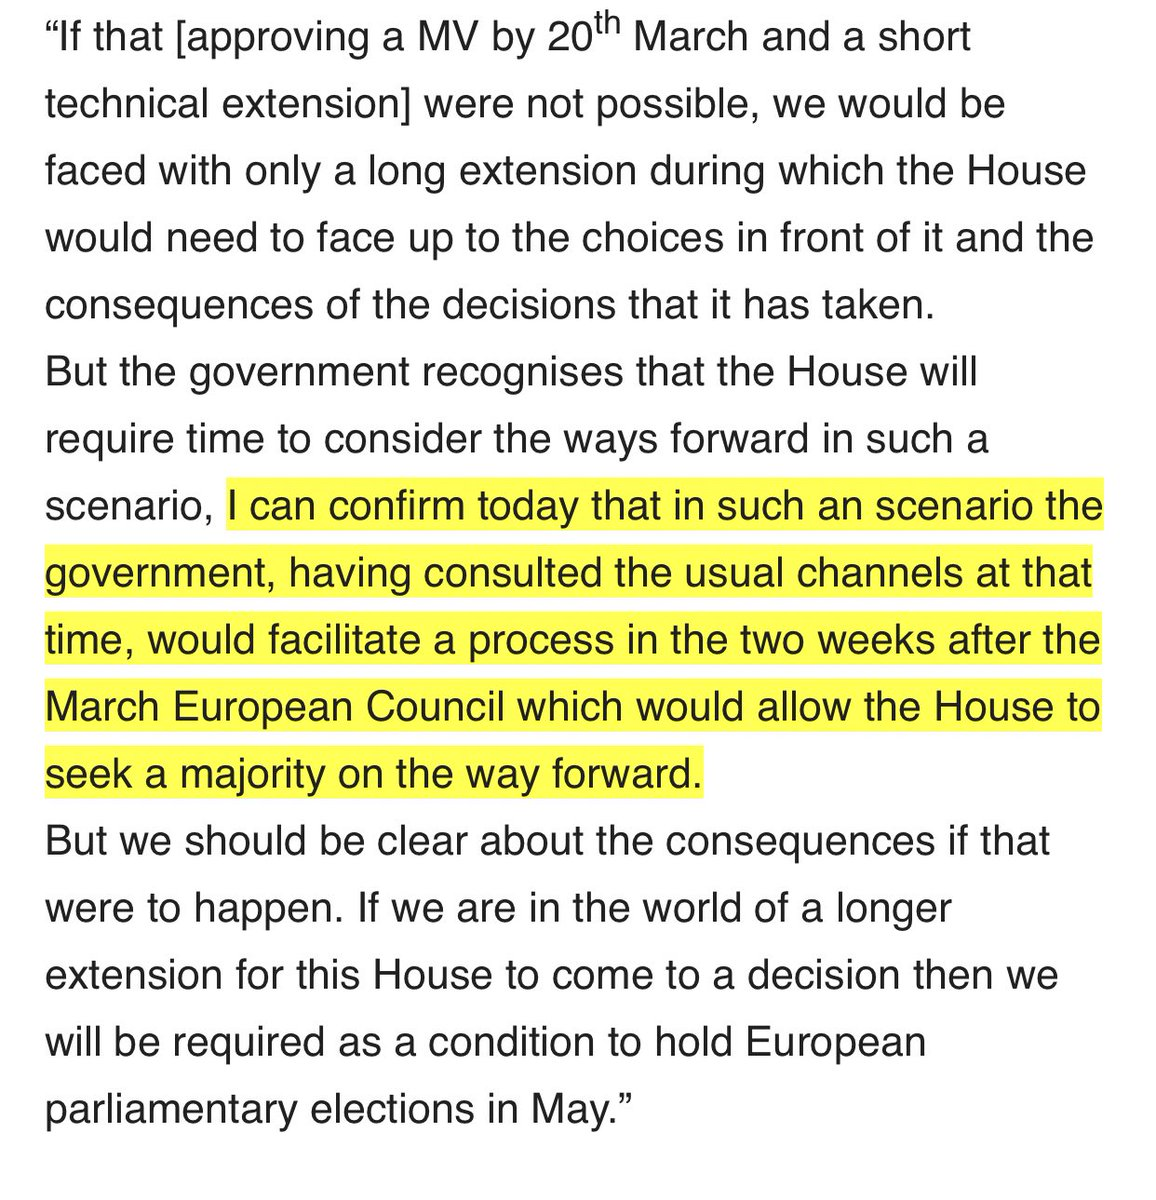 last week Lidington promised that indicative votes would occurs in the first two weeks of April if MV not approved by today ...  This was the basis upon which Benn-Letwin-Cooper-Boles was defeated by 2 votes last Thursday... today PM suggested that indicative votes not needed now